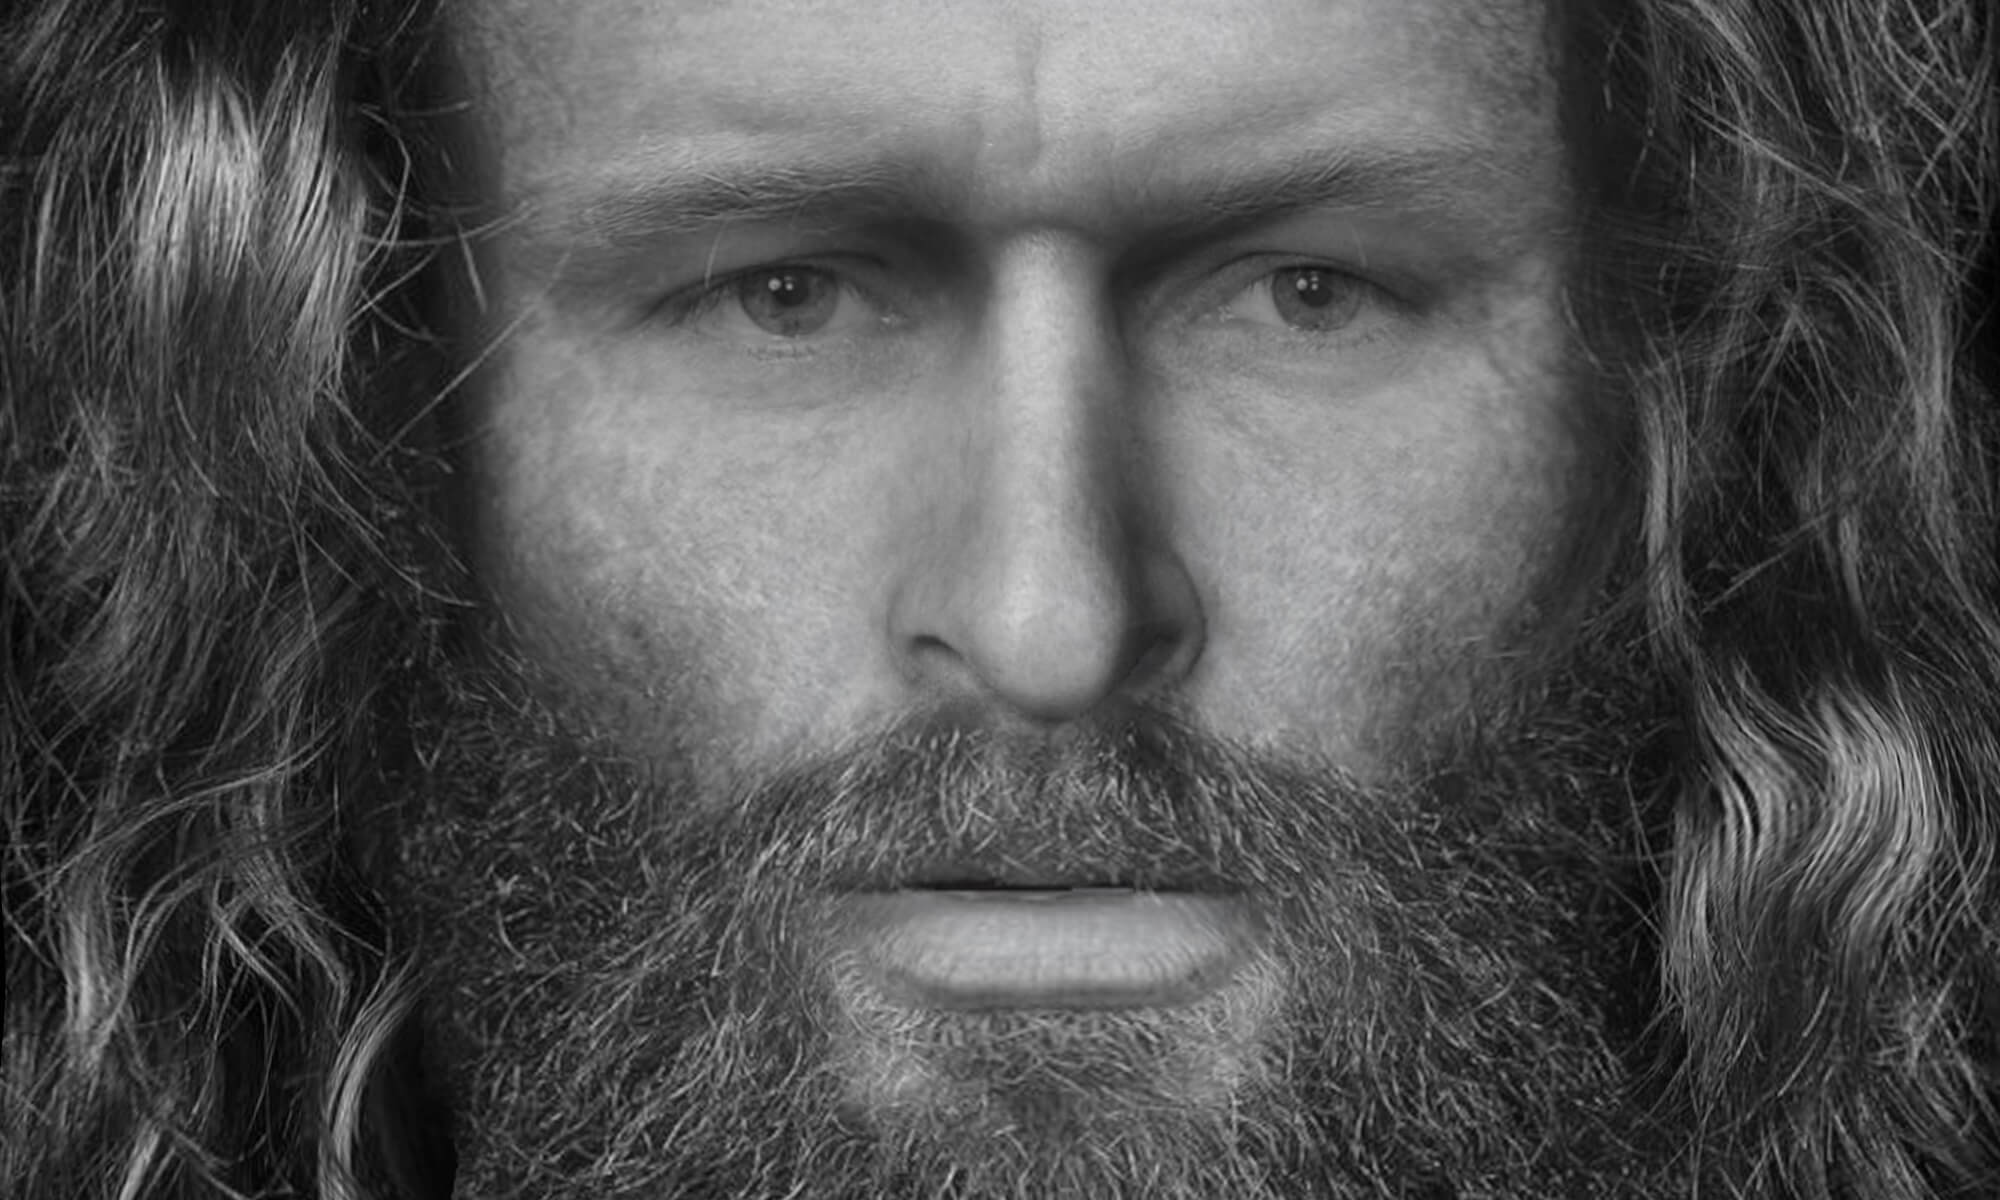 Scientists have reconstructed the identity of the murdered 1400 years ago human. Guess who he was?